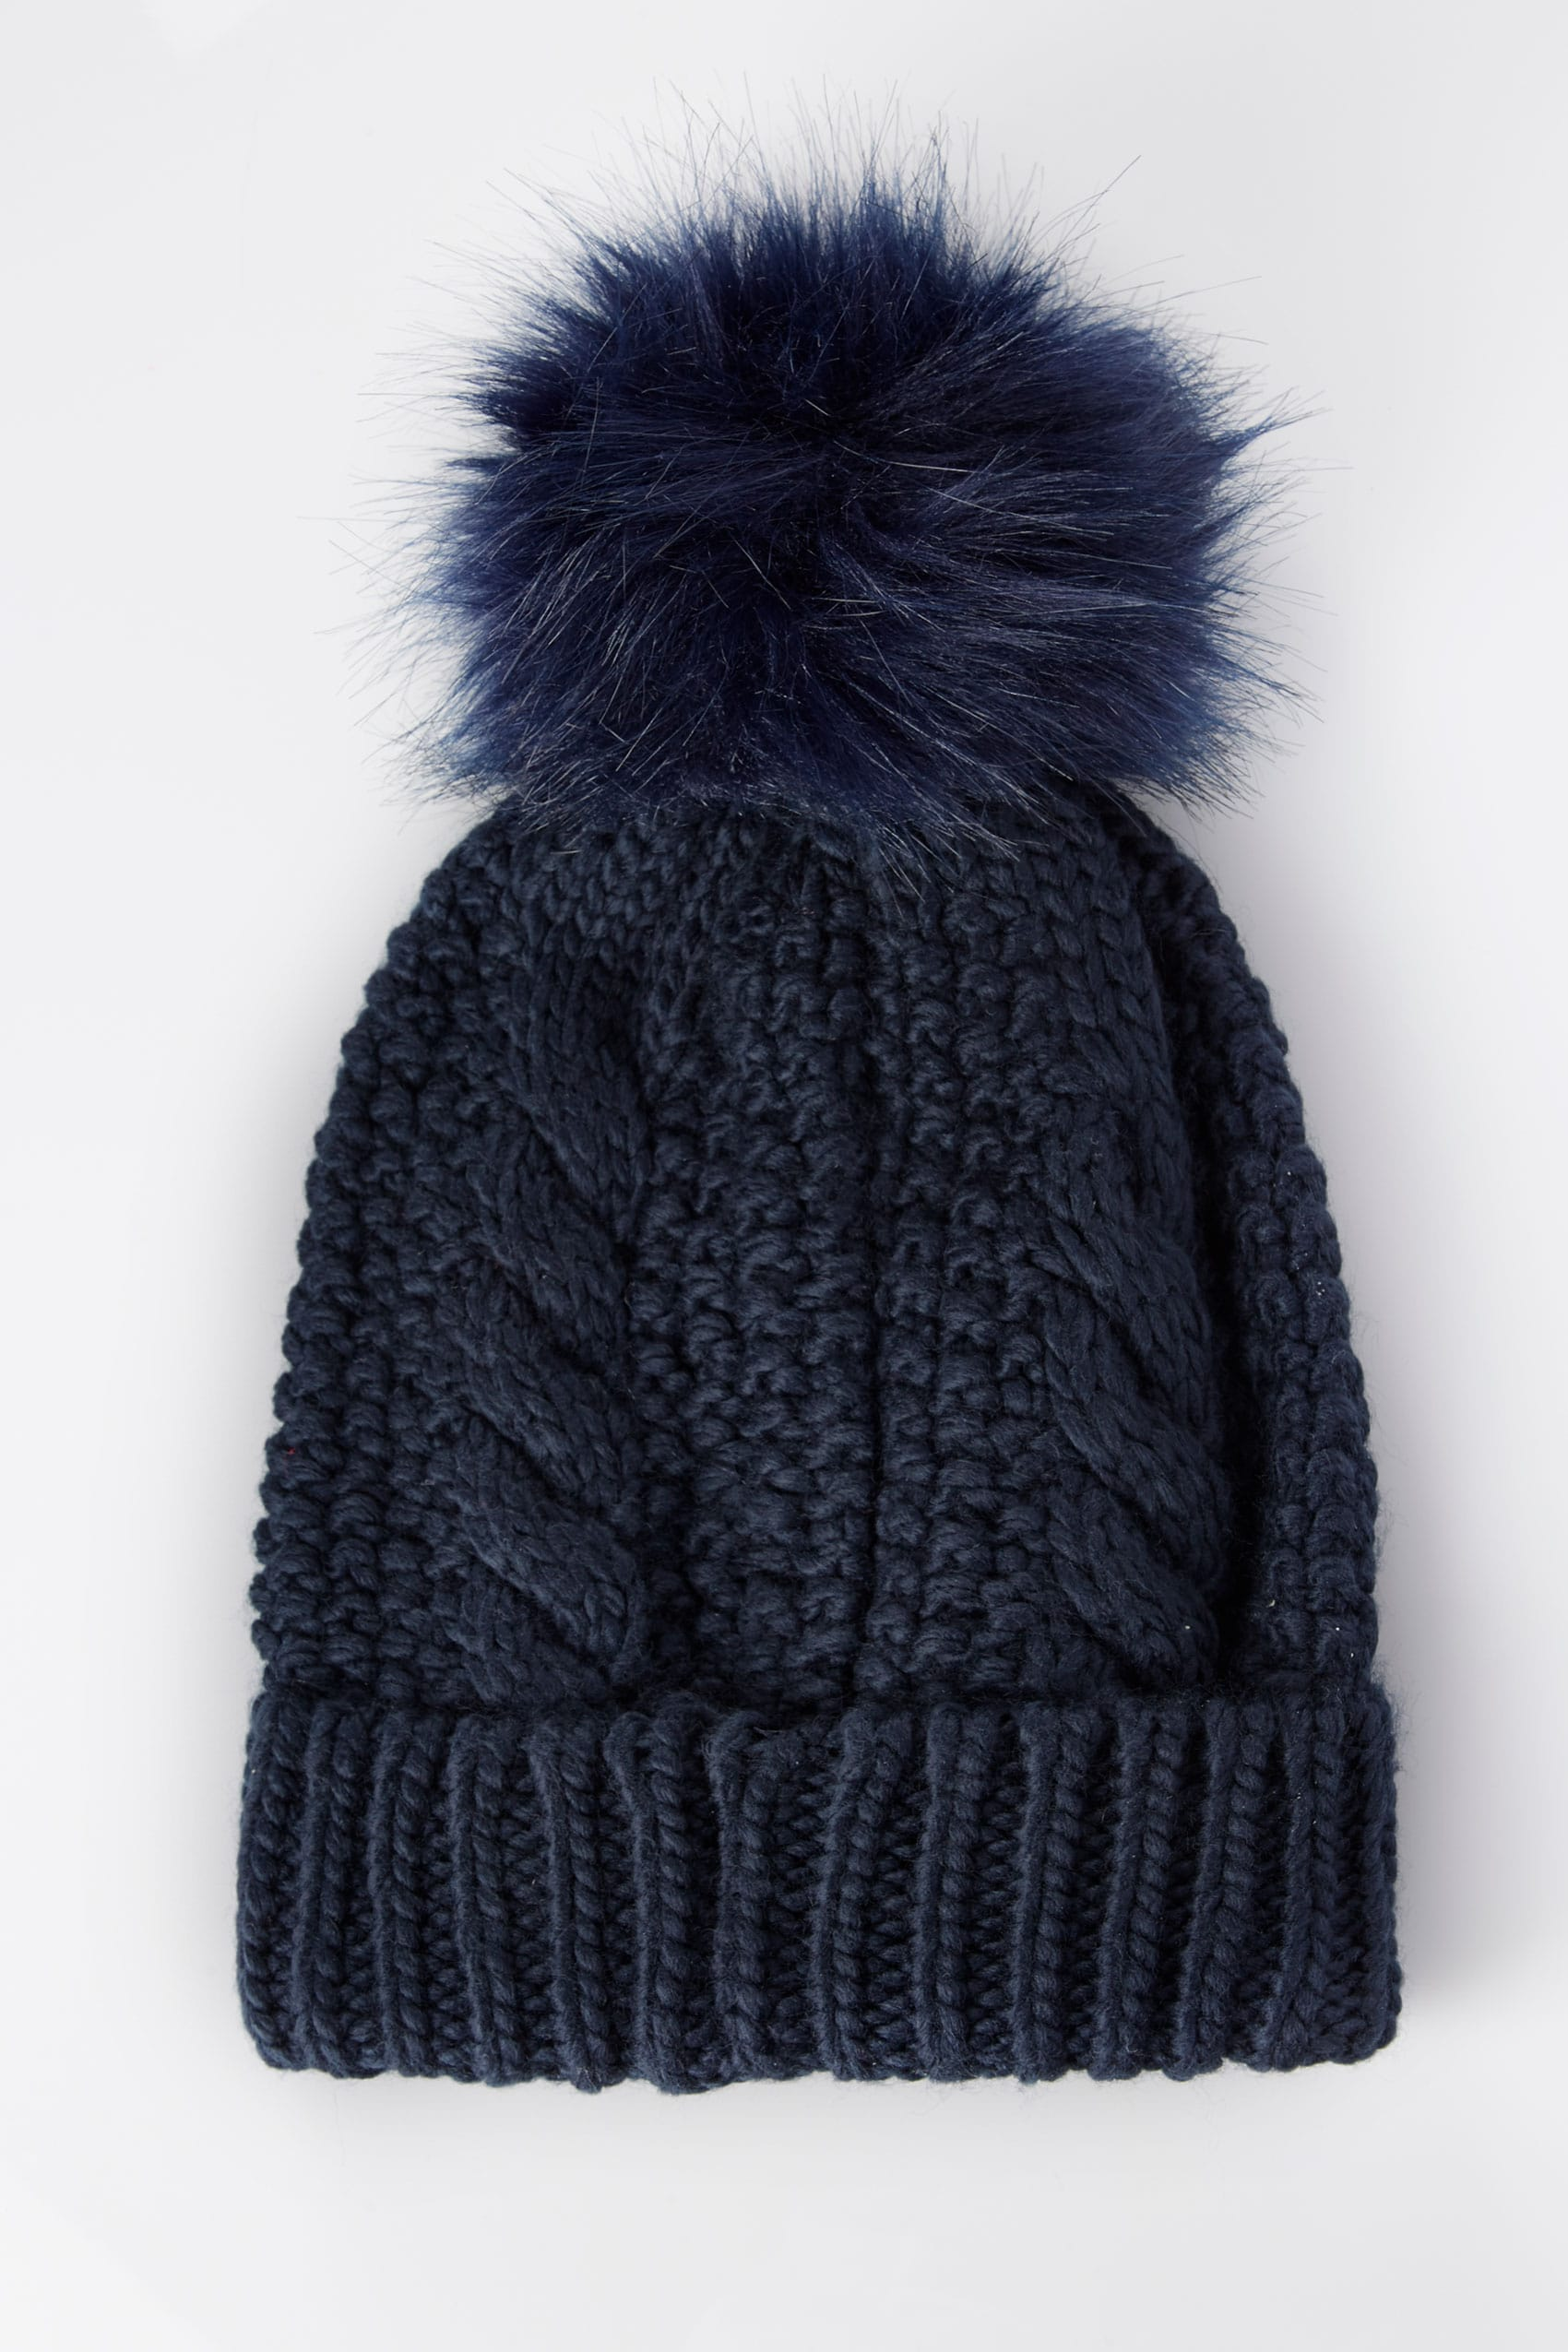 Navy Cable Knit Hat With Pom-Pom 3718b149296